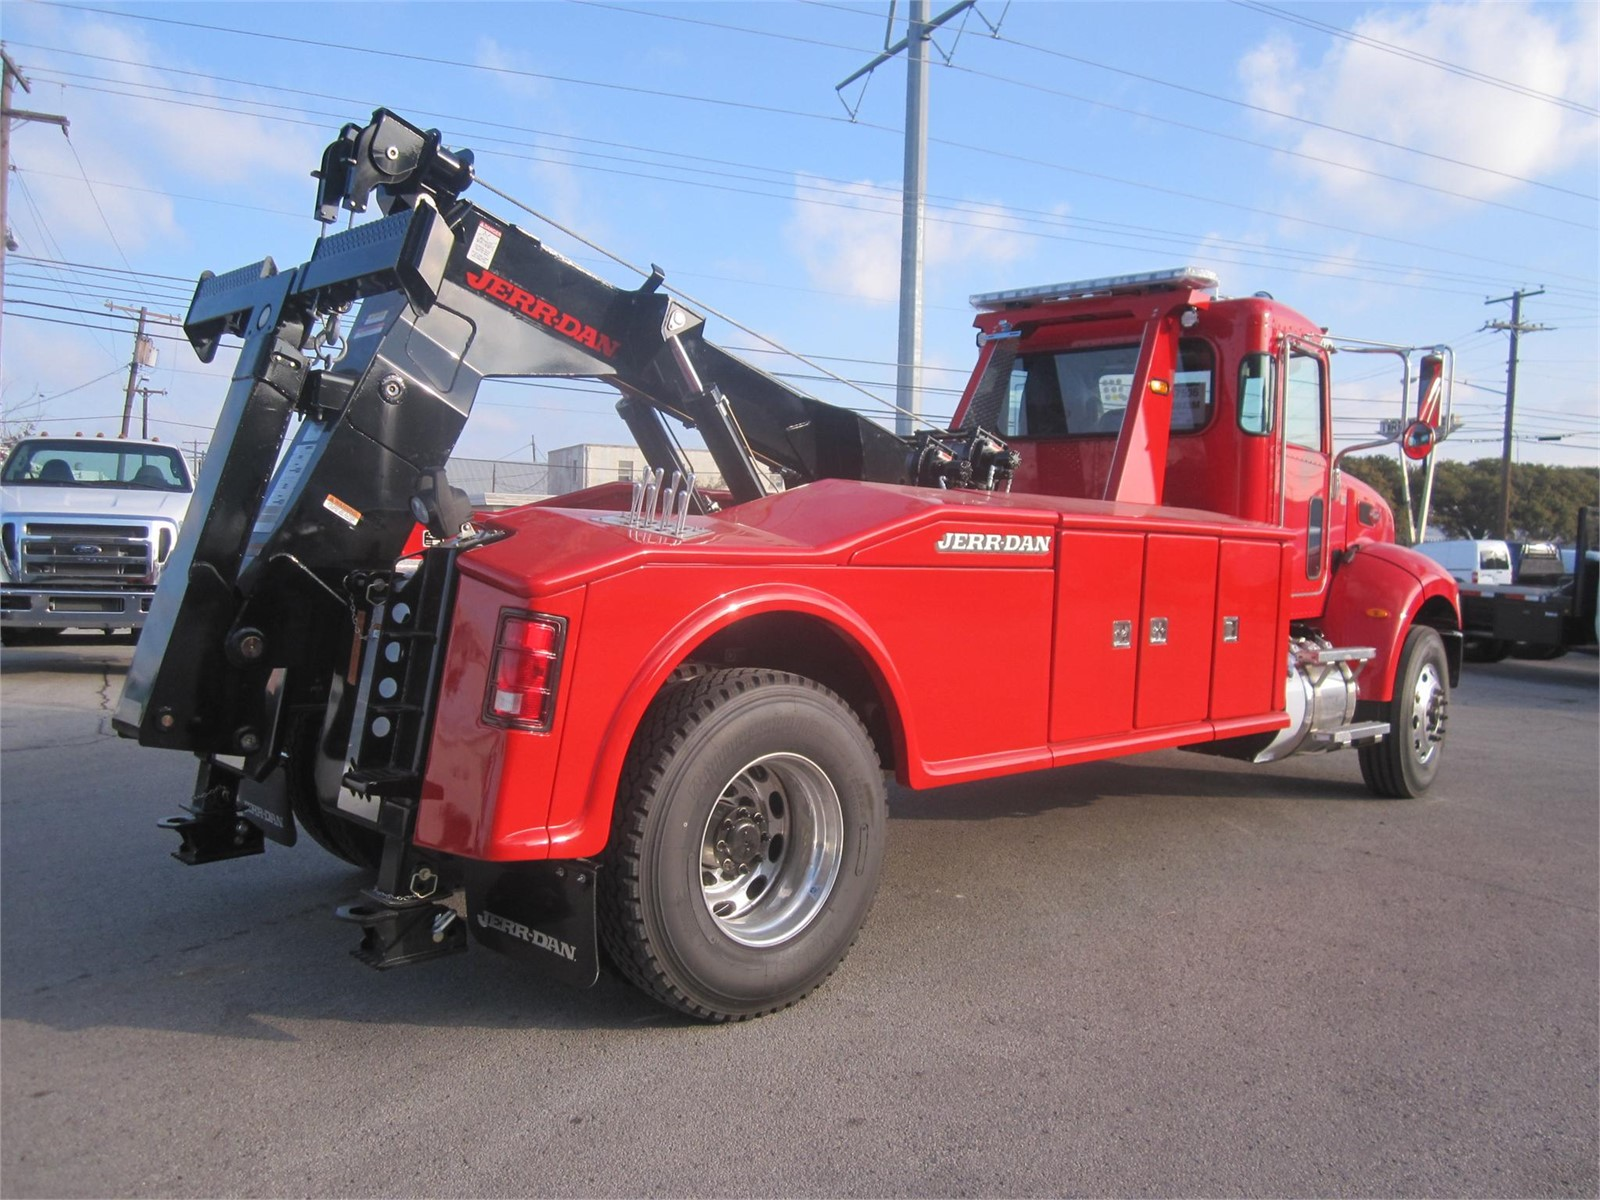 boom truck sales rental 3 availabel new jerr dan peterbilt 16 ton wreckers red white and. Black Bedroom Furniture Sets. Home Design Ideas